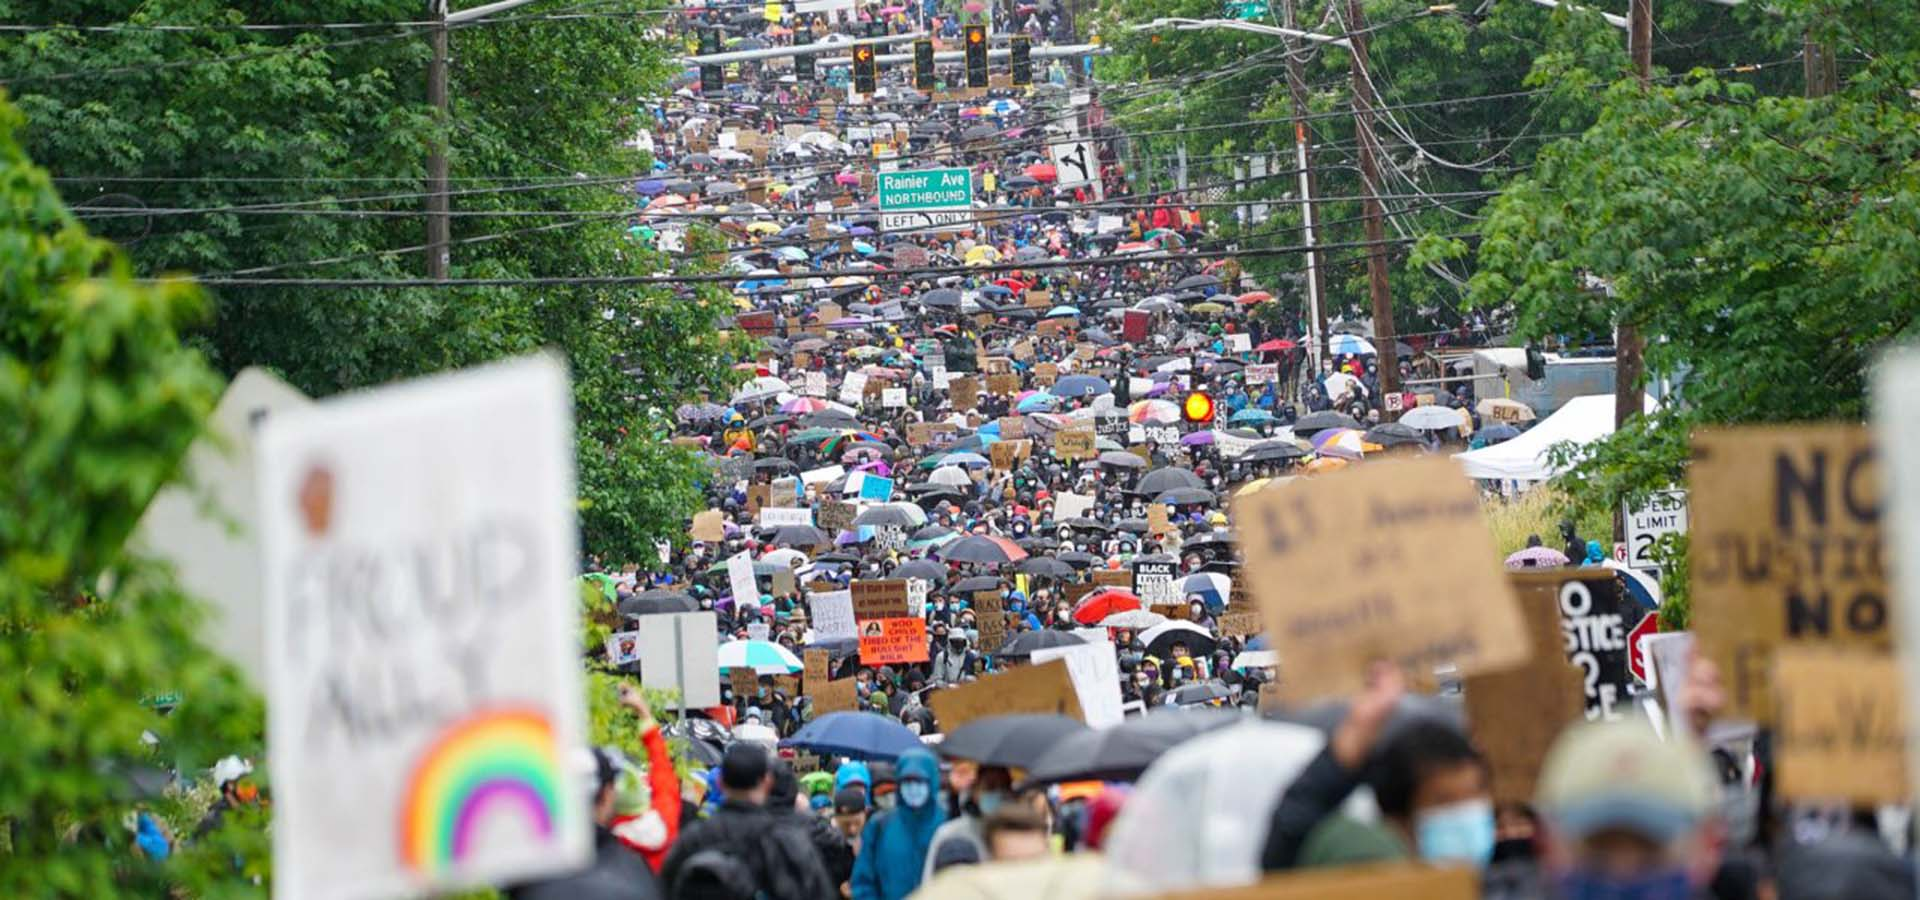 Down-street view of a protest with thousands of attendees